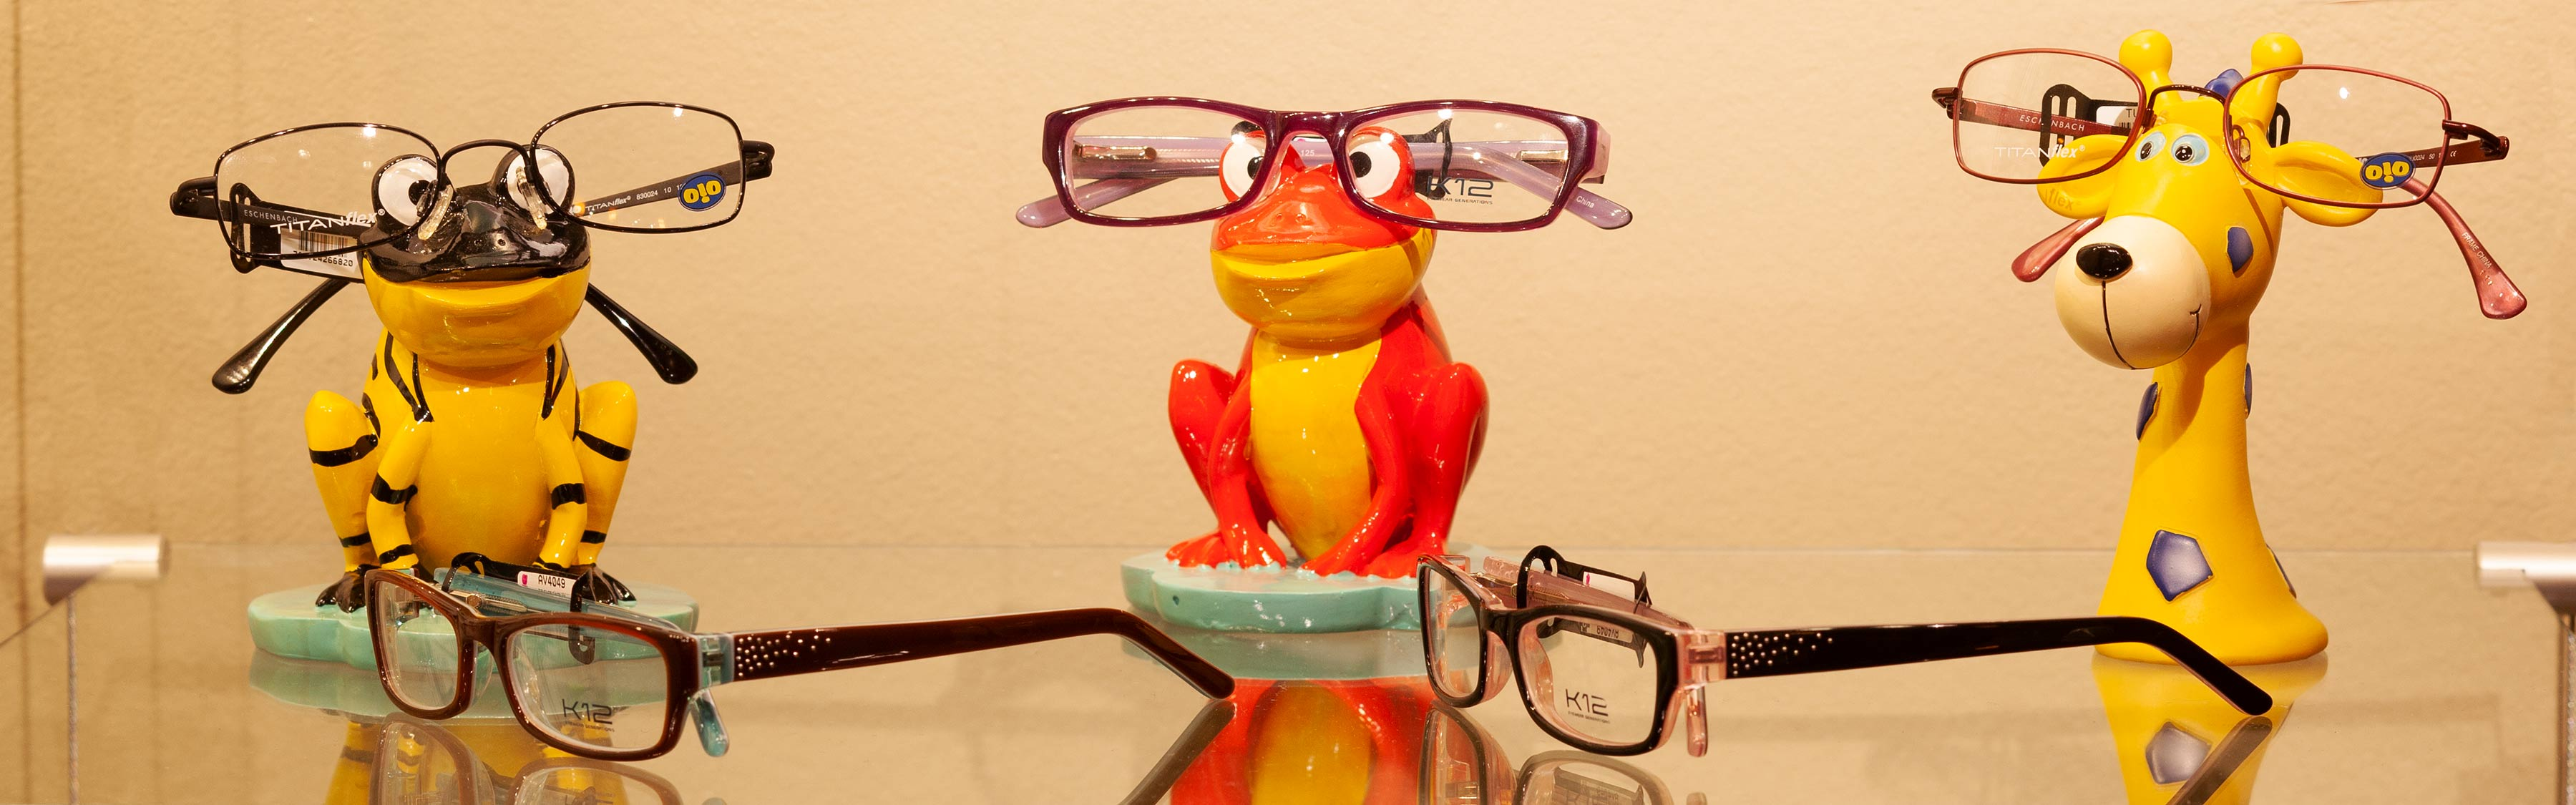 blink-vision-eyeglasses-animals-wearing-glasses-01